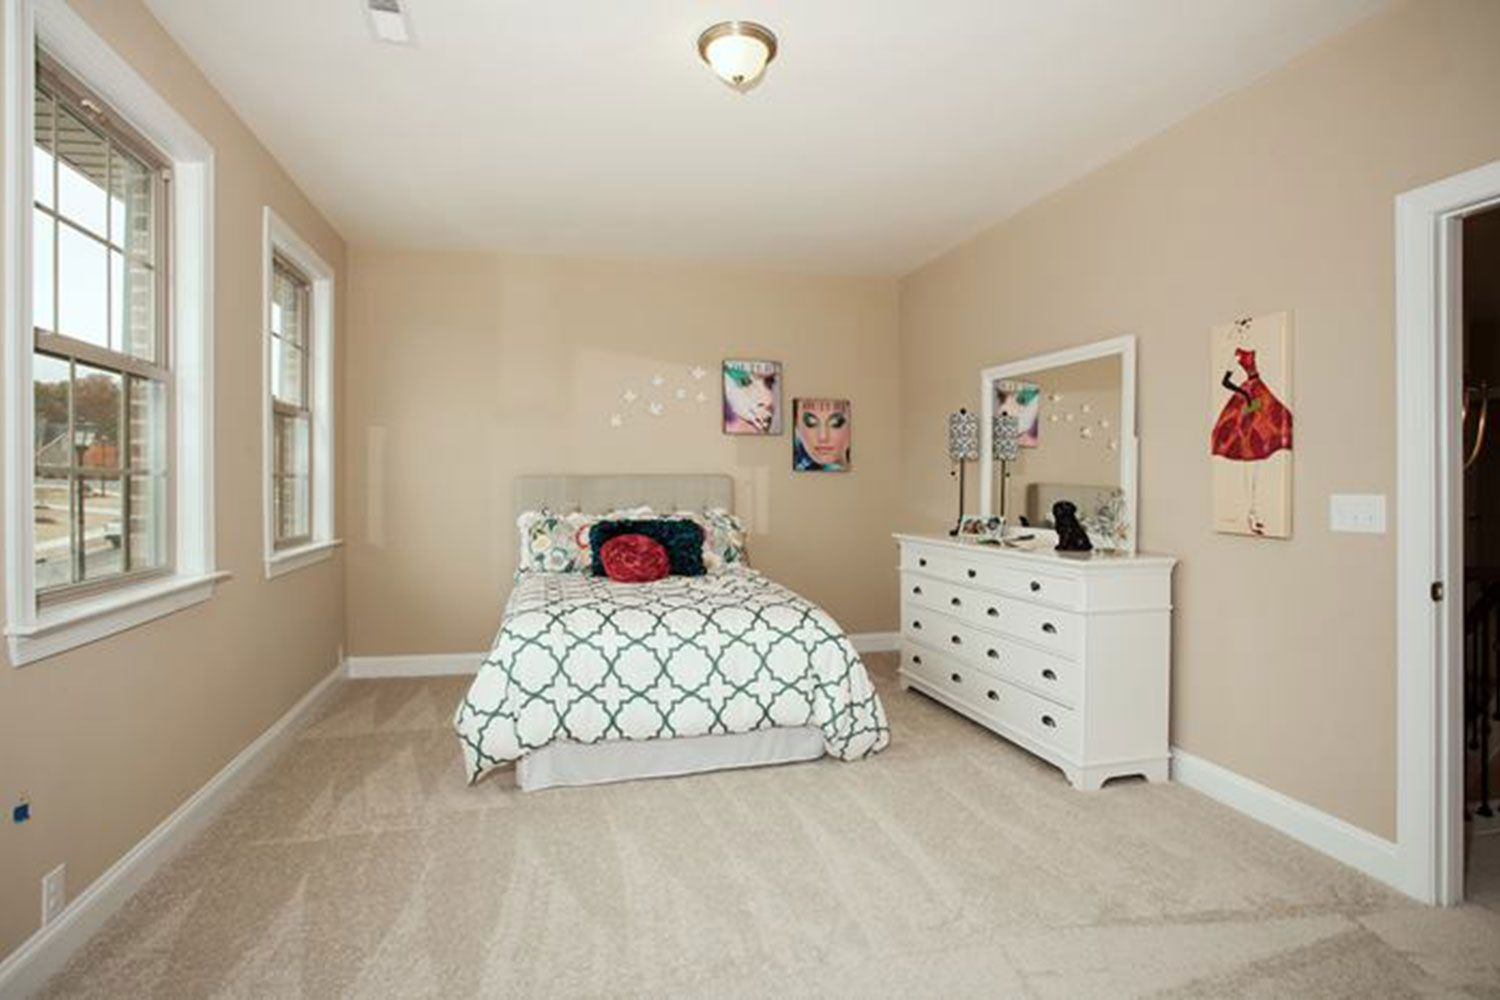 Bedroom featured in the Stonehaven By Dan Ryan Builders in Raleigh-Durham-Chapel Hill, NC